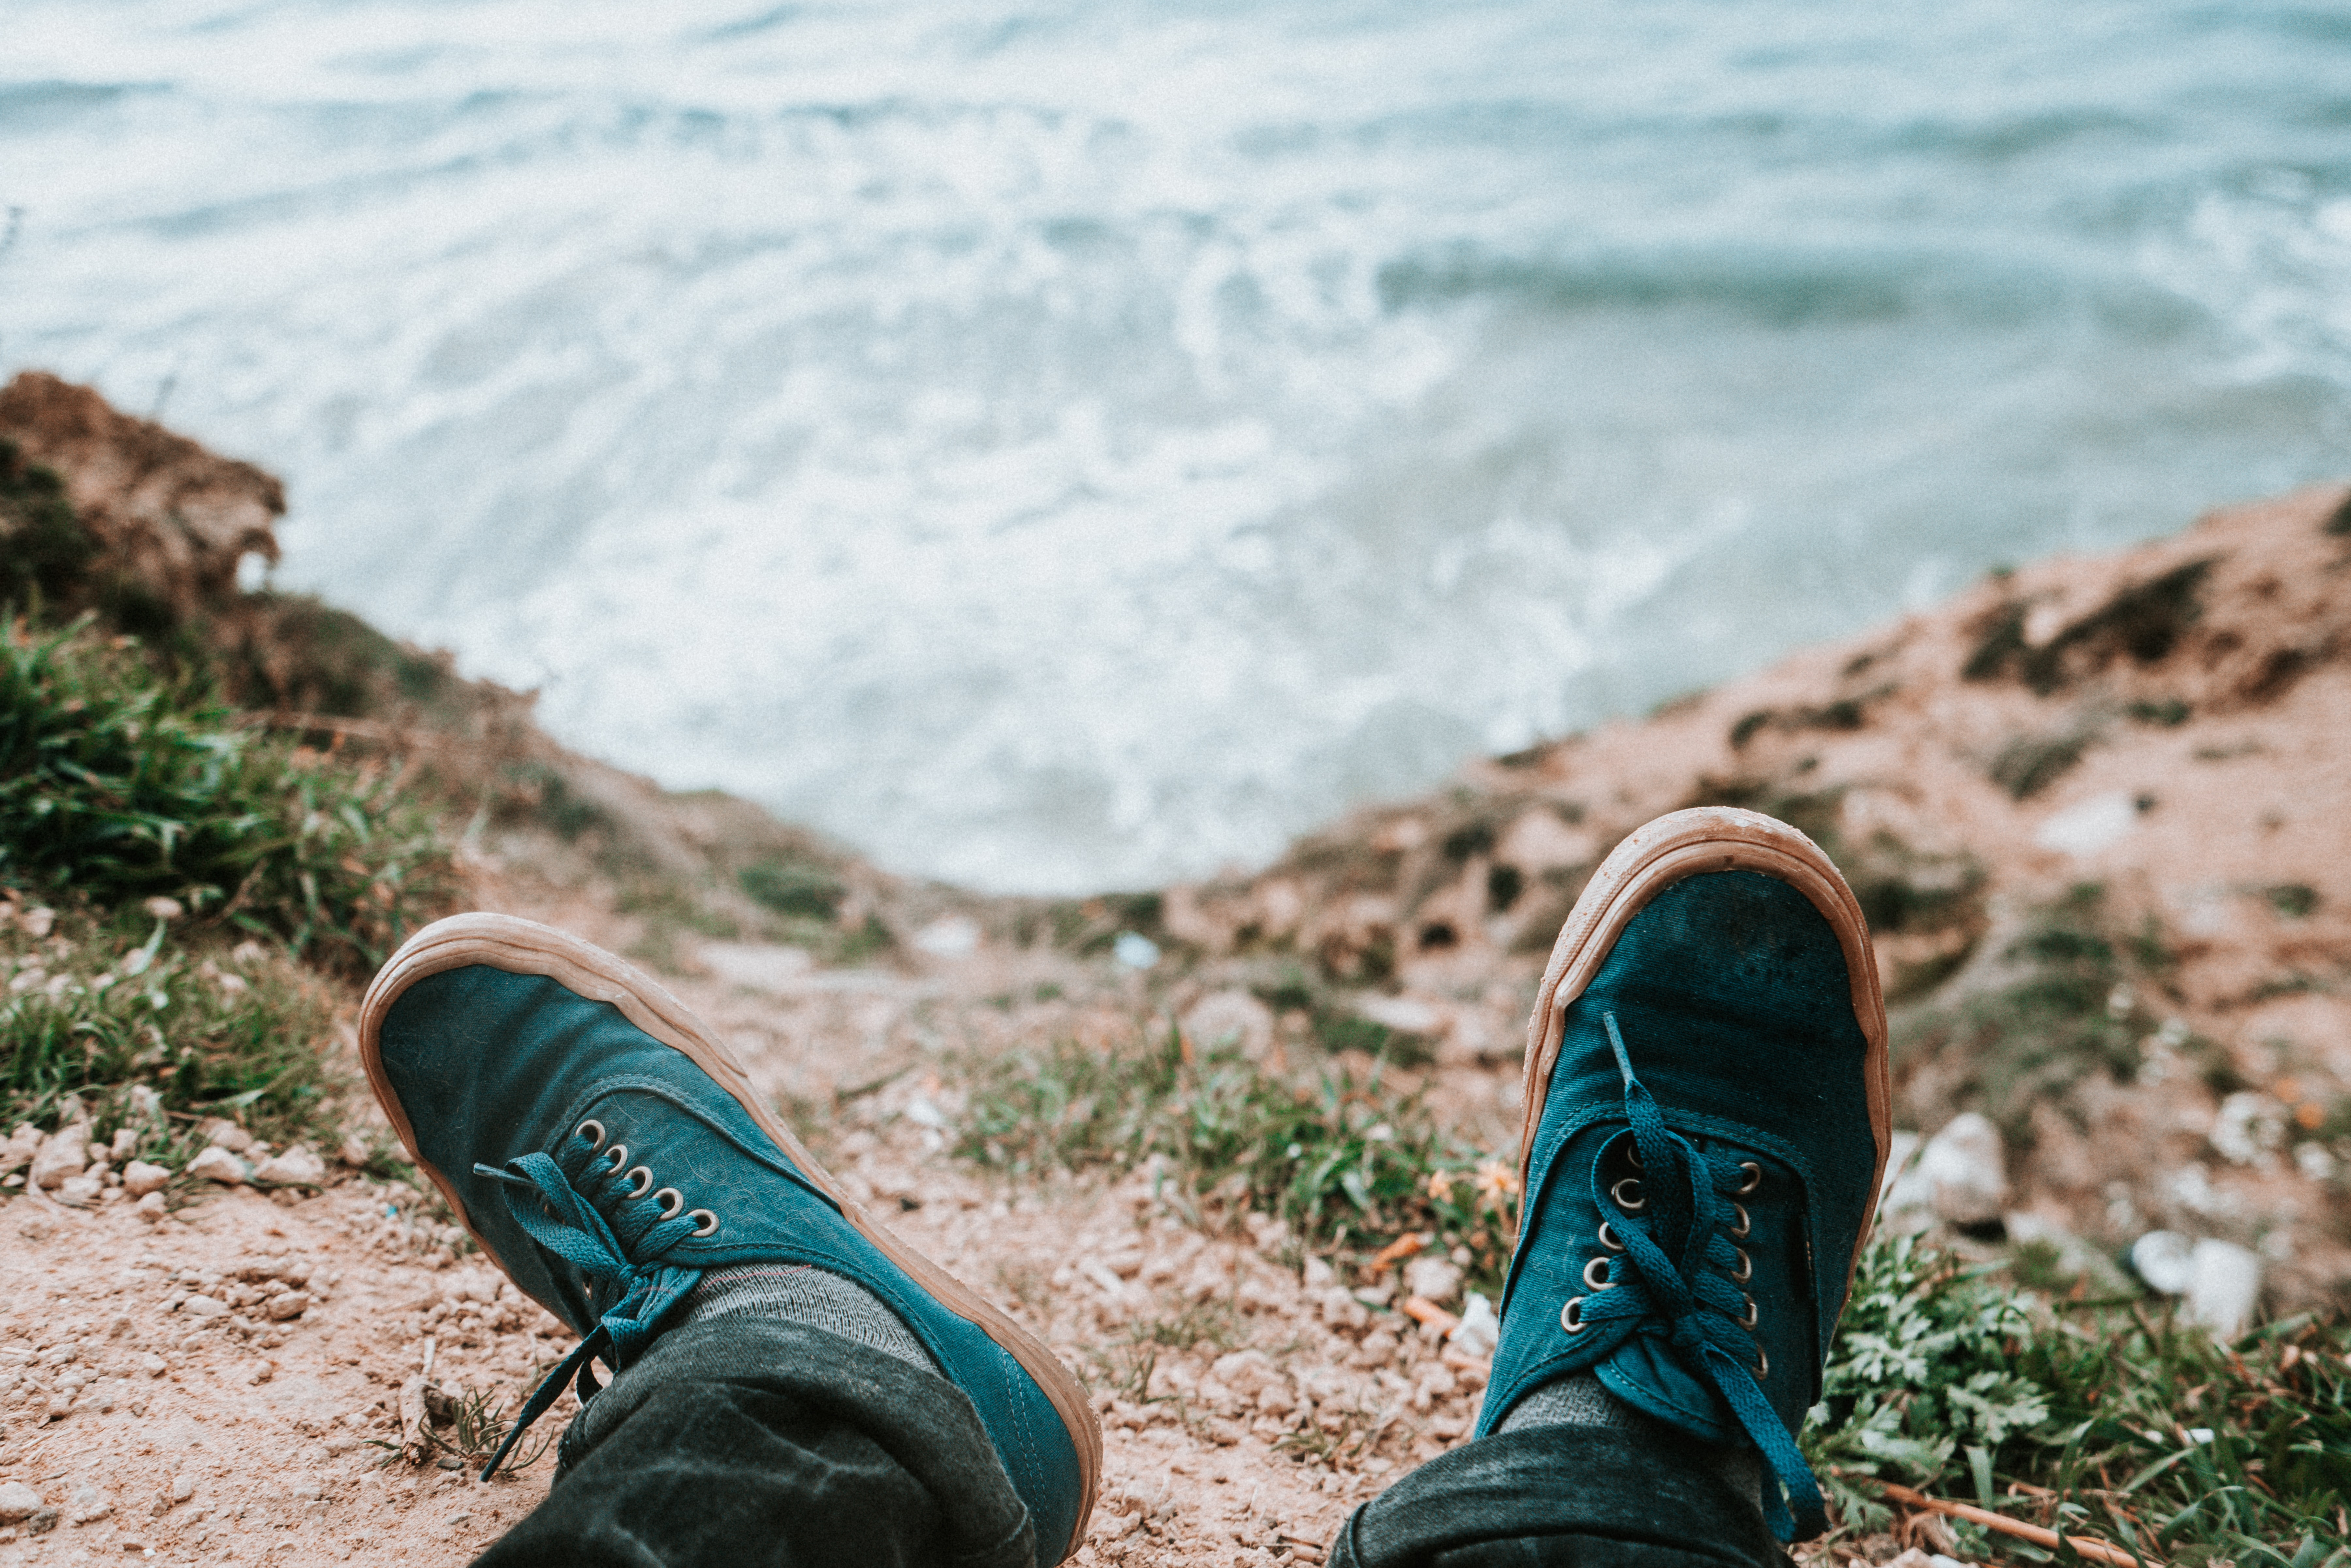 person wearing blue and brown low-top sneakers in front of body of water